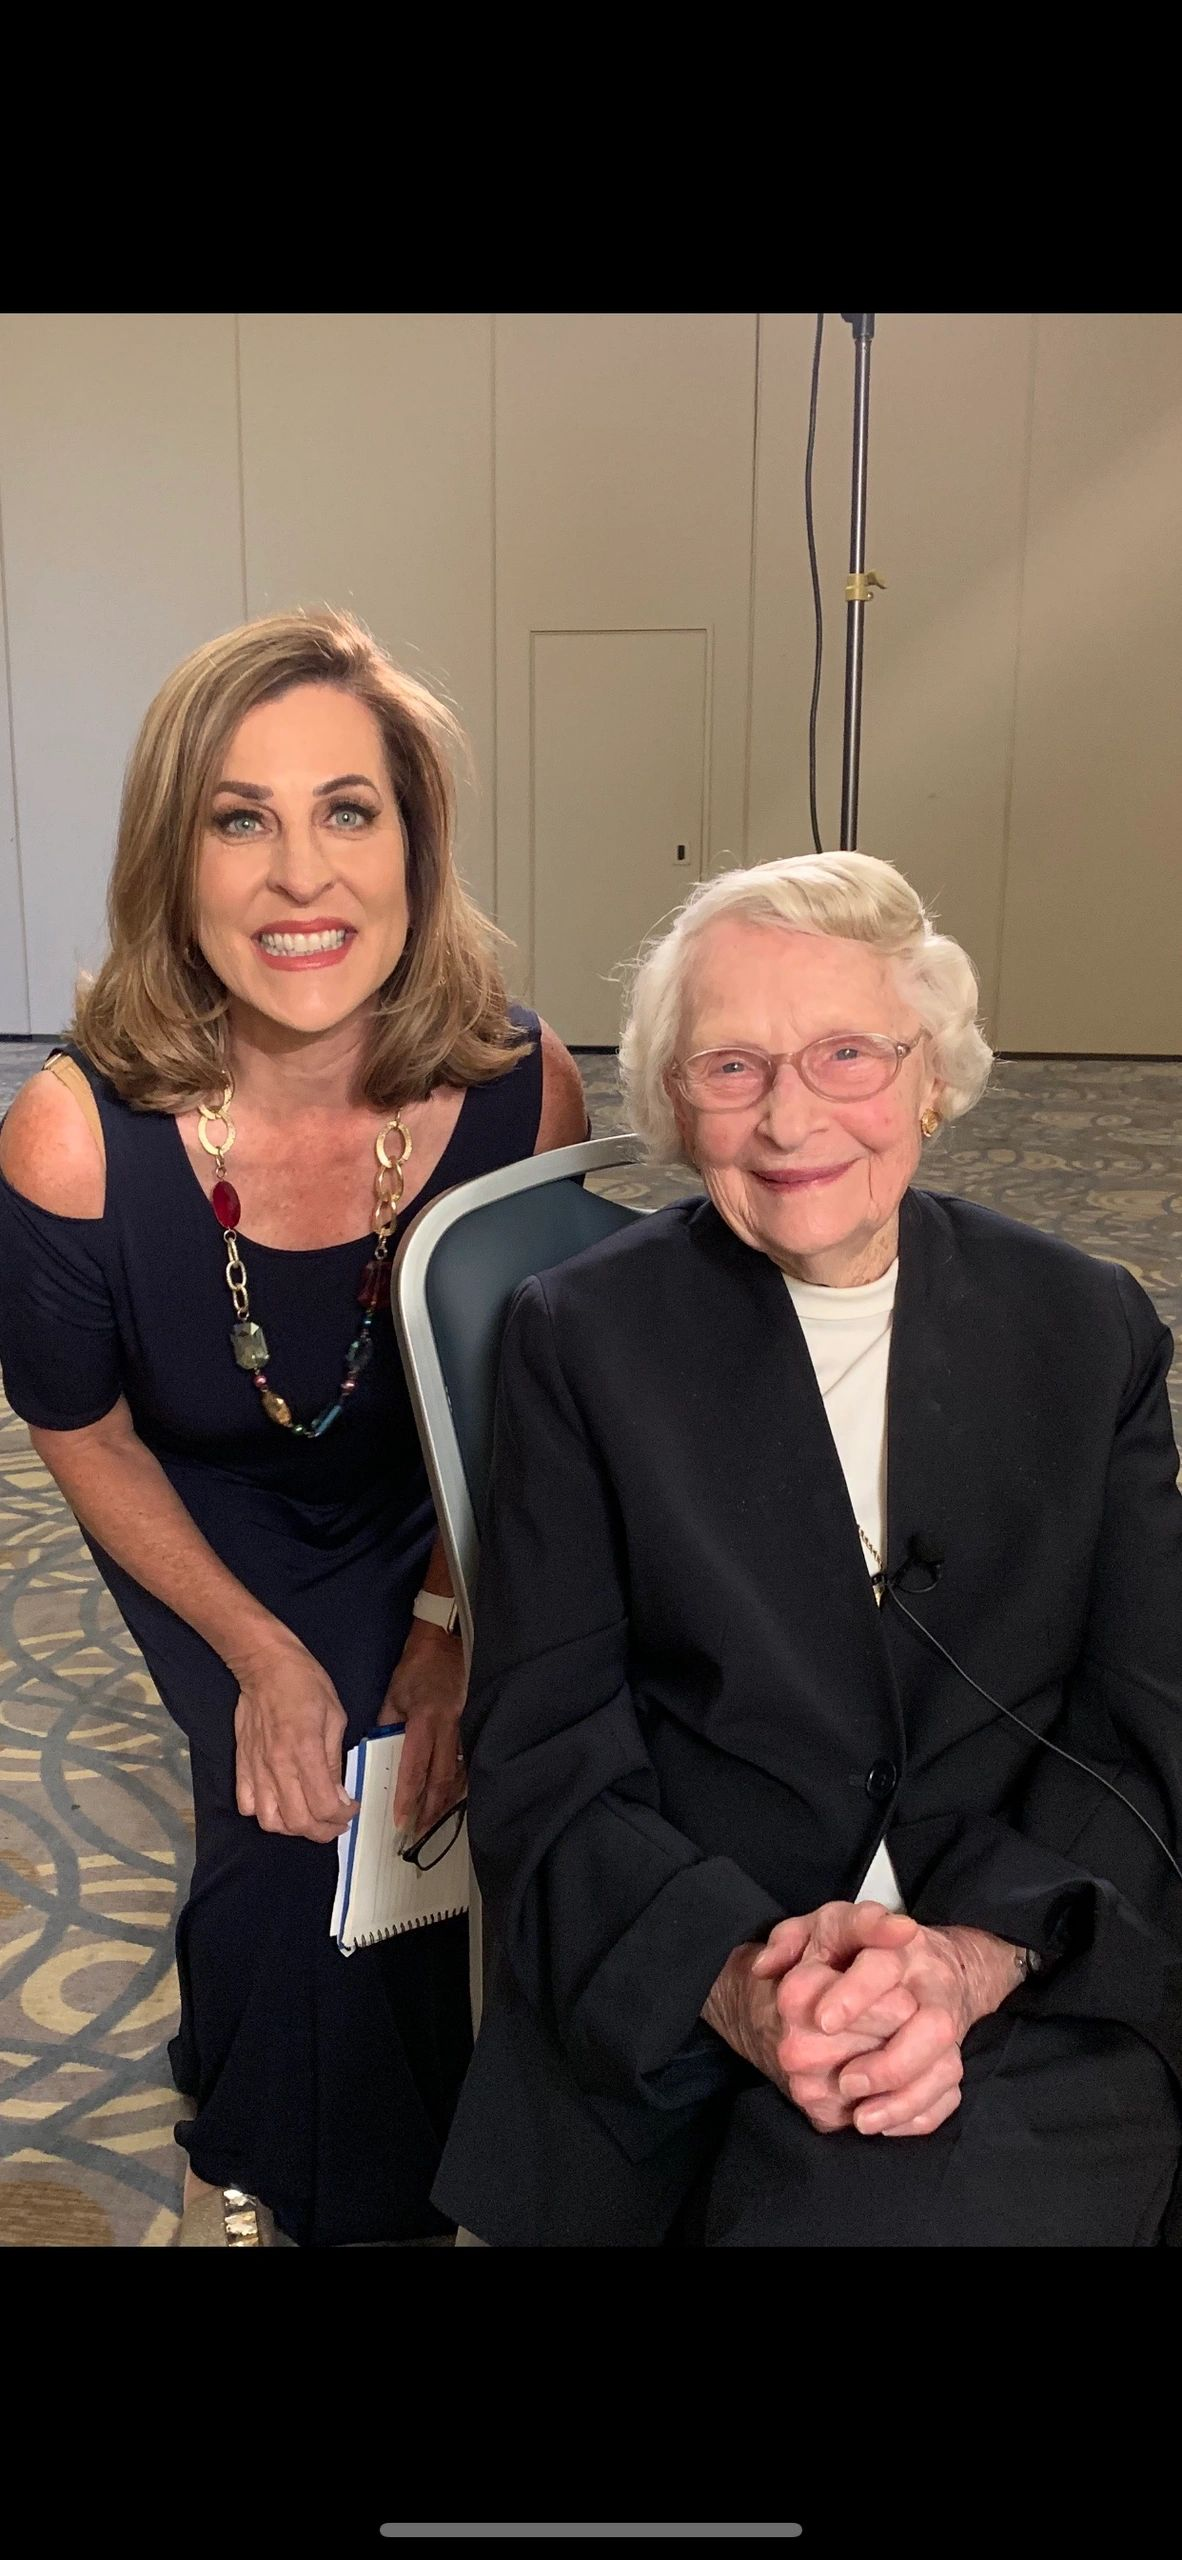 "{""blocks"":[{""key"":""ff235"",""text"":""Chicago Bears Owner Virginia McCaskey sits down with Peggy on the Bears 100th Anniversary.  From her college plans to her favorite players, this is living NFL  history!  Checkout episode 7 https://soundcloud.com/jwkpeg/chicago-bears-100th-with-virginia-mccaskey-and-hall-of-fame-writer-don-pierson\n"",""type"":""unstyled"",""depth"":0,""inlineStyleRanges"":[],""entityRanges"":[],""data"":{}}],""entityMap"":{}}"